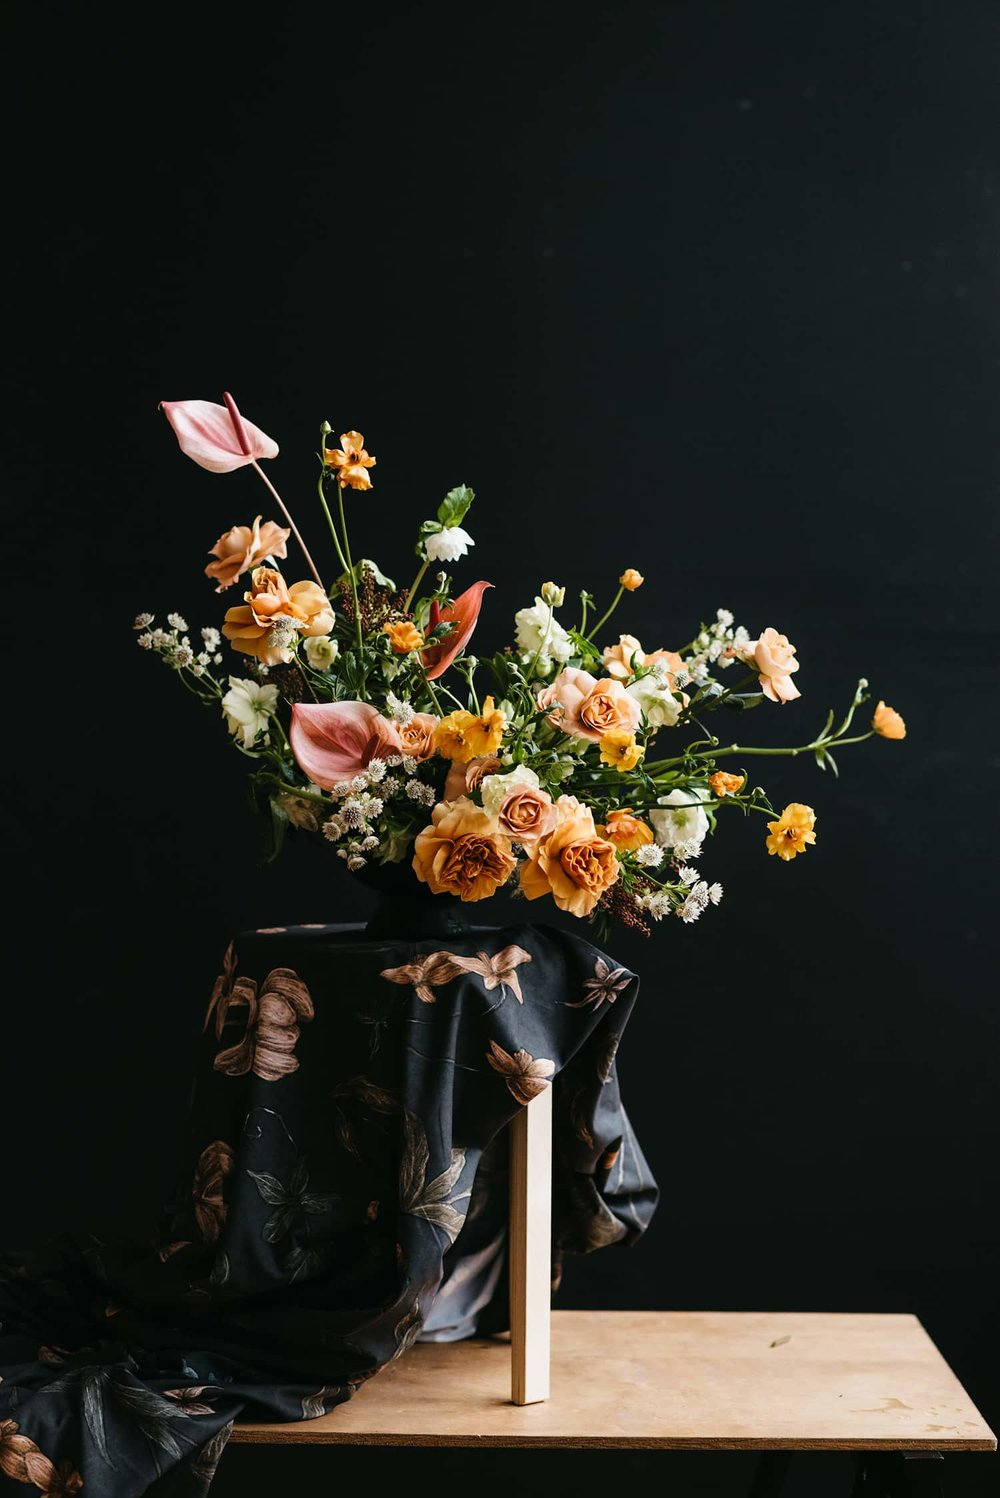 Floral designer and Portland florist Color Theory Collective demonstrates flower arranging.